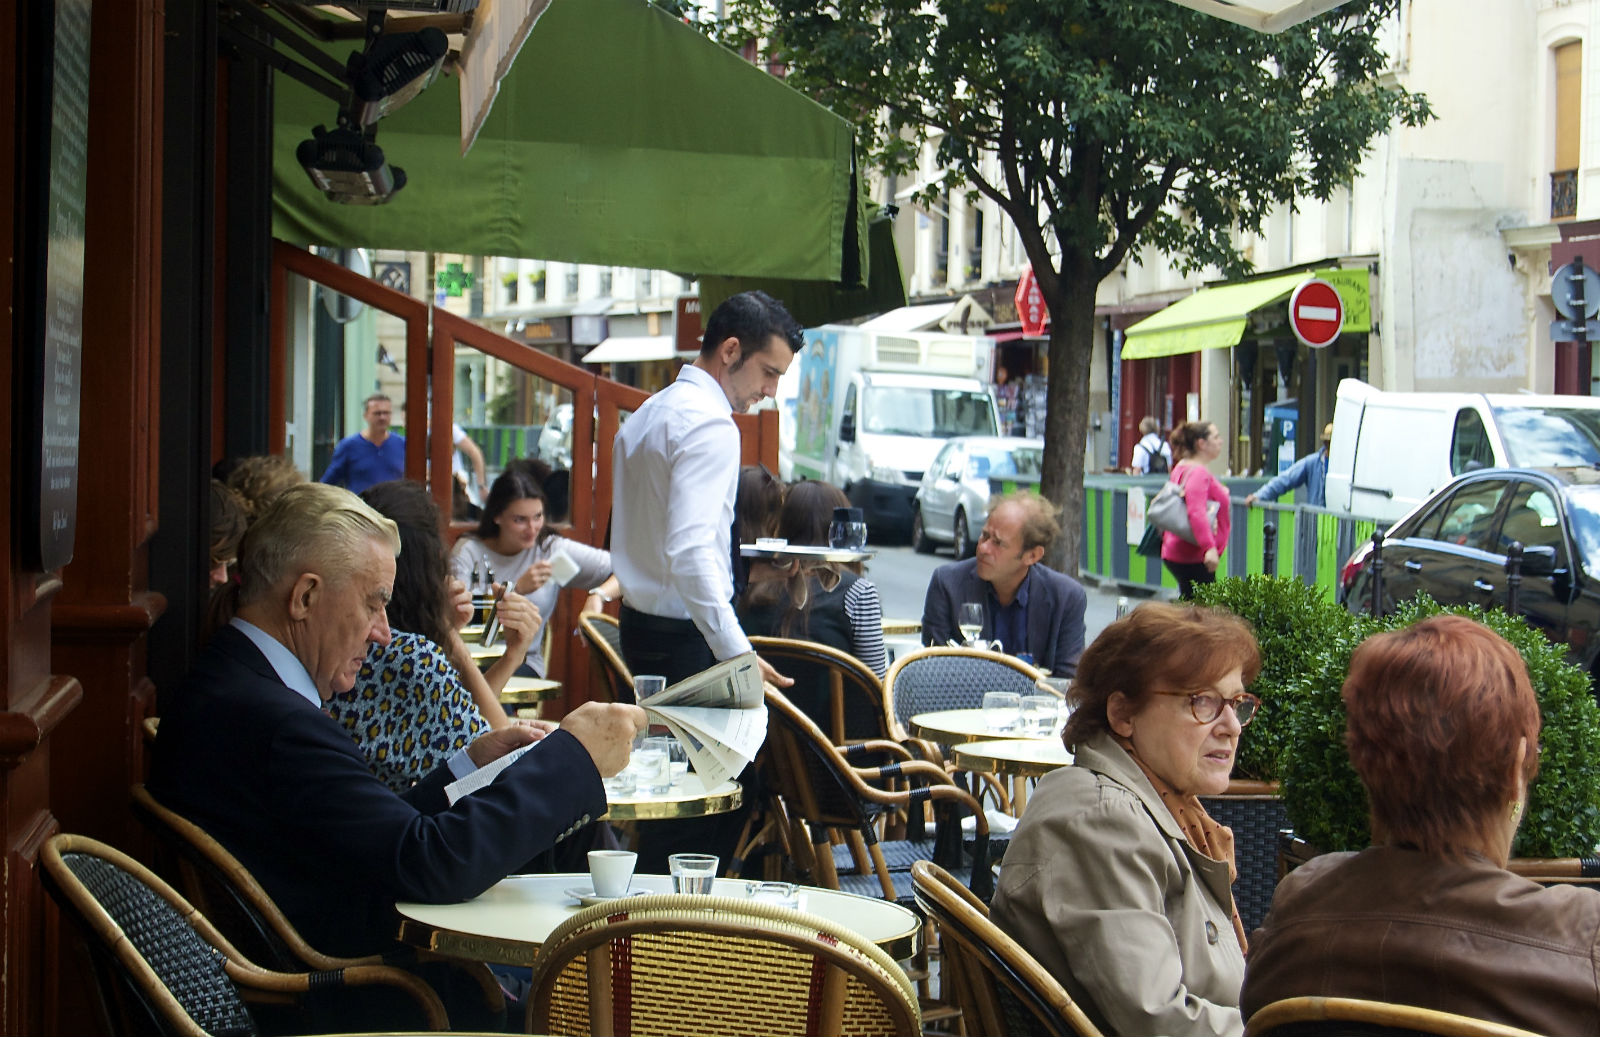 HiP Paris blog, Rude French, Parisian restaurant terrace